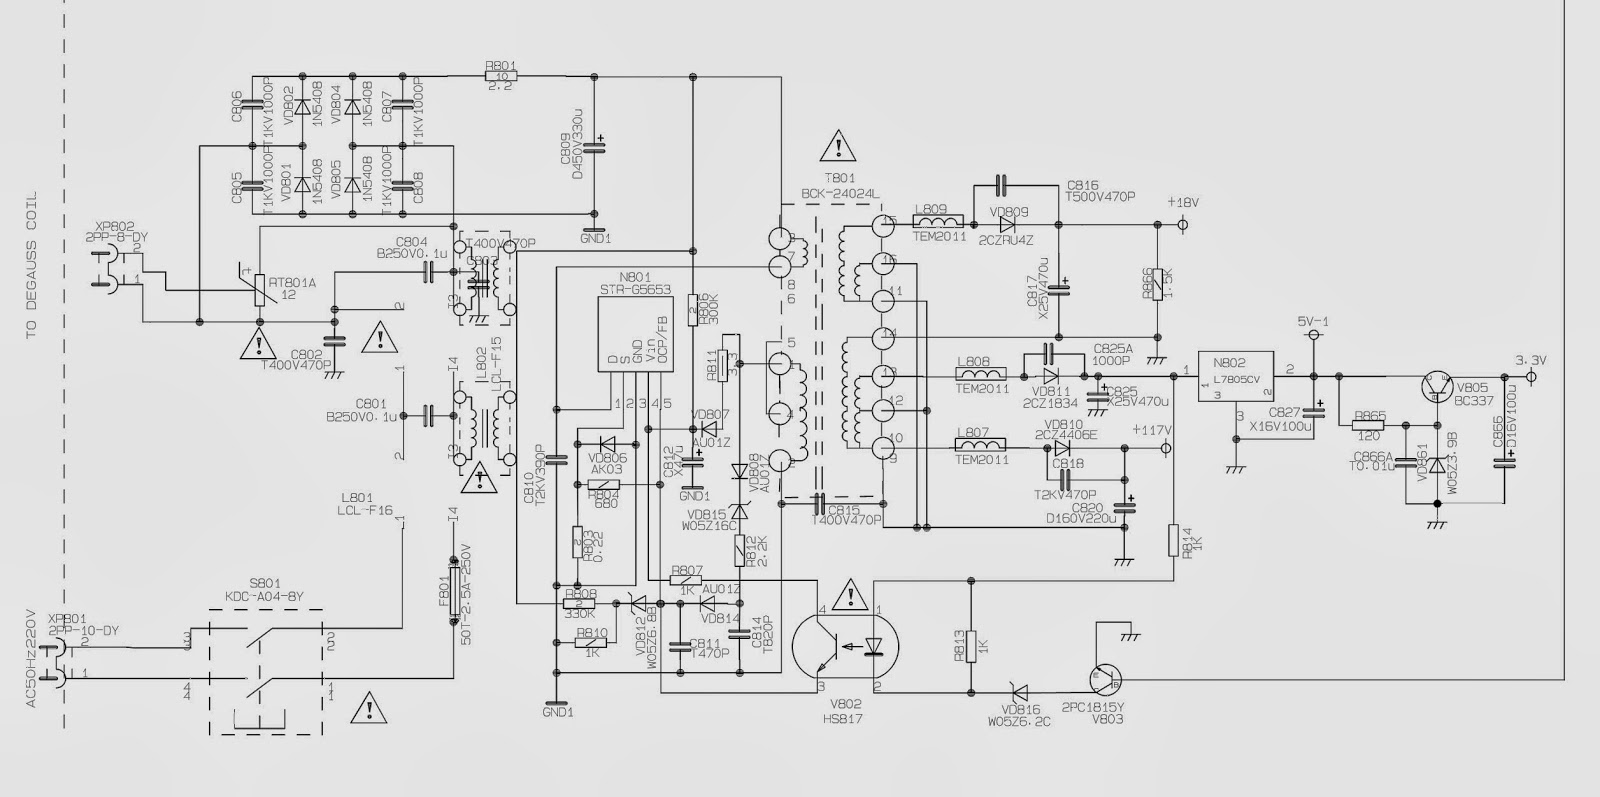 medium resolution of home theater wiring diagrams tivo wave home discover your wiring home theater wiring diagram home discover